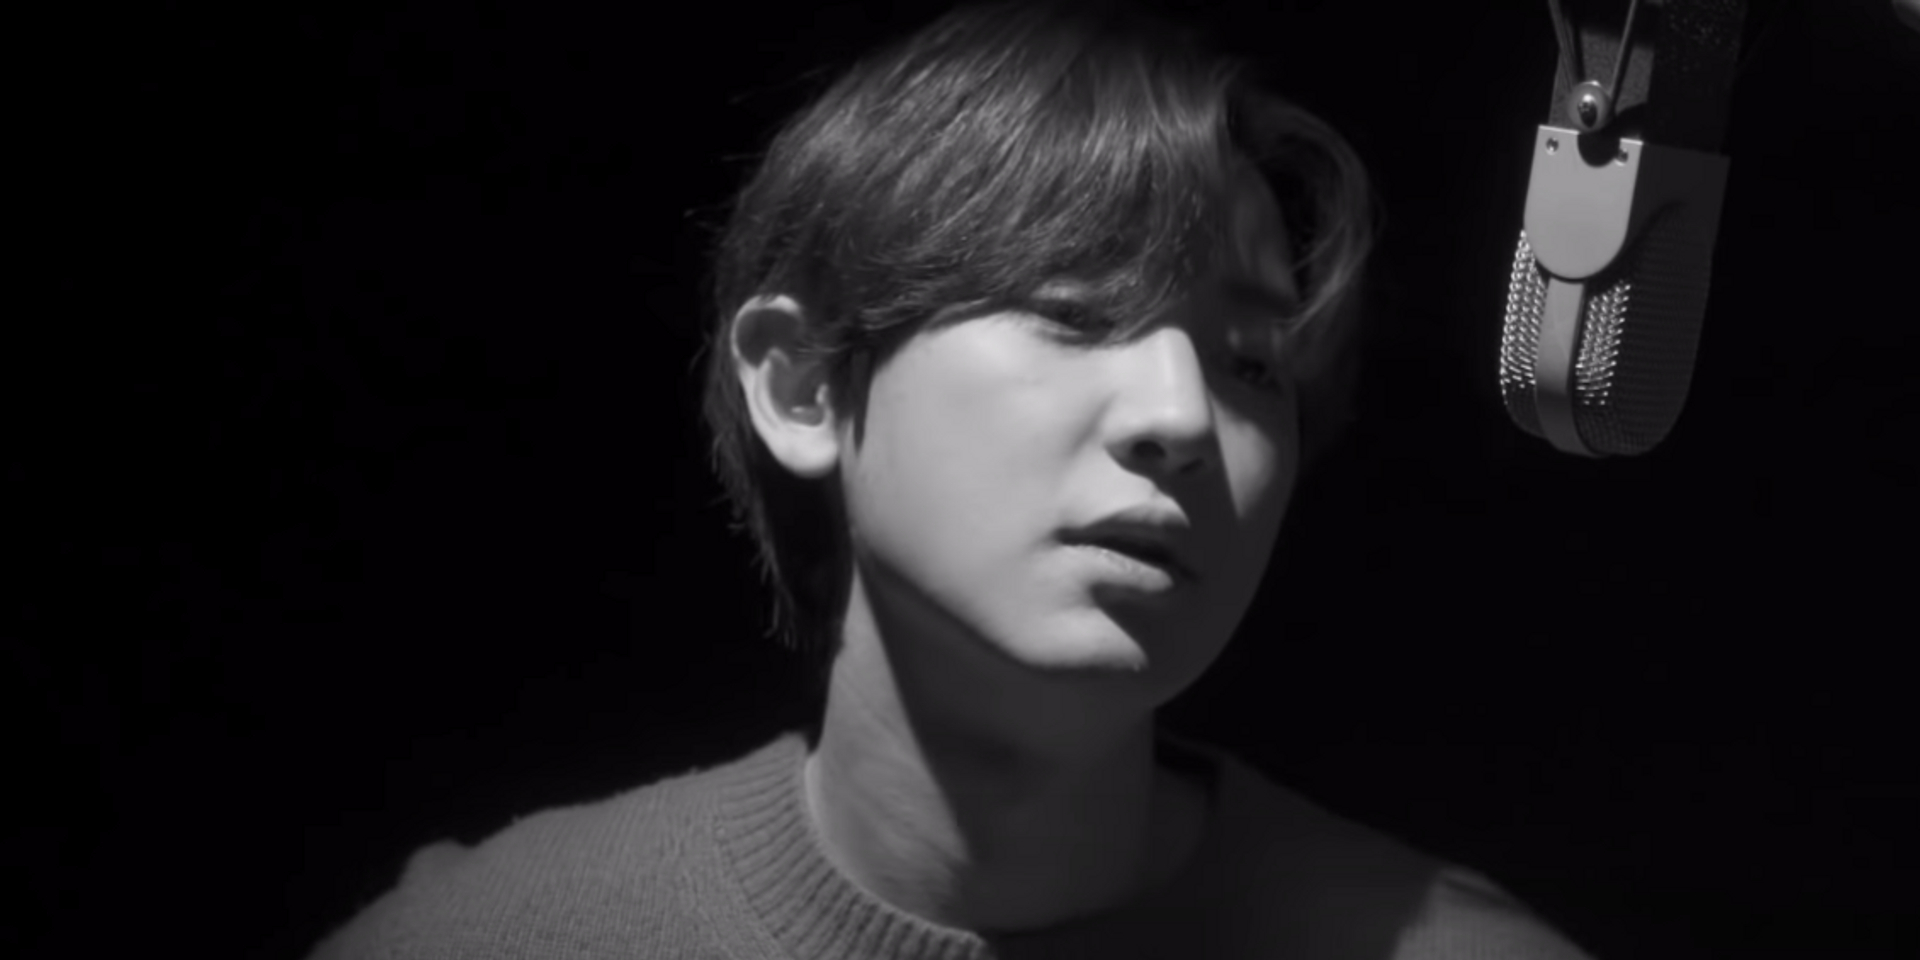 EXO's Chanyeol reimagines 'Without You' for musical film 'The Box' - listen